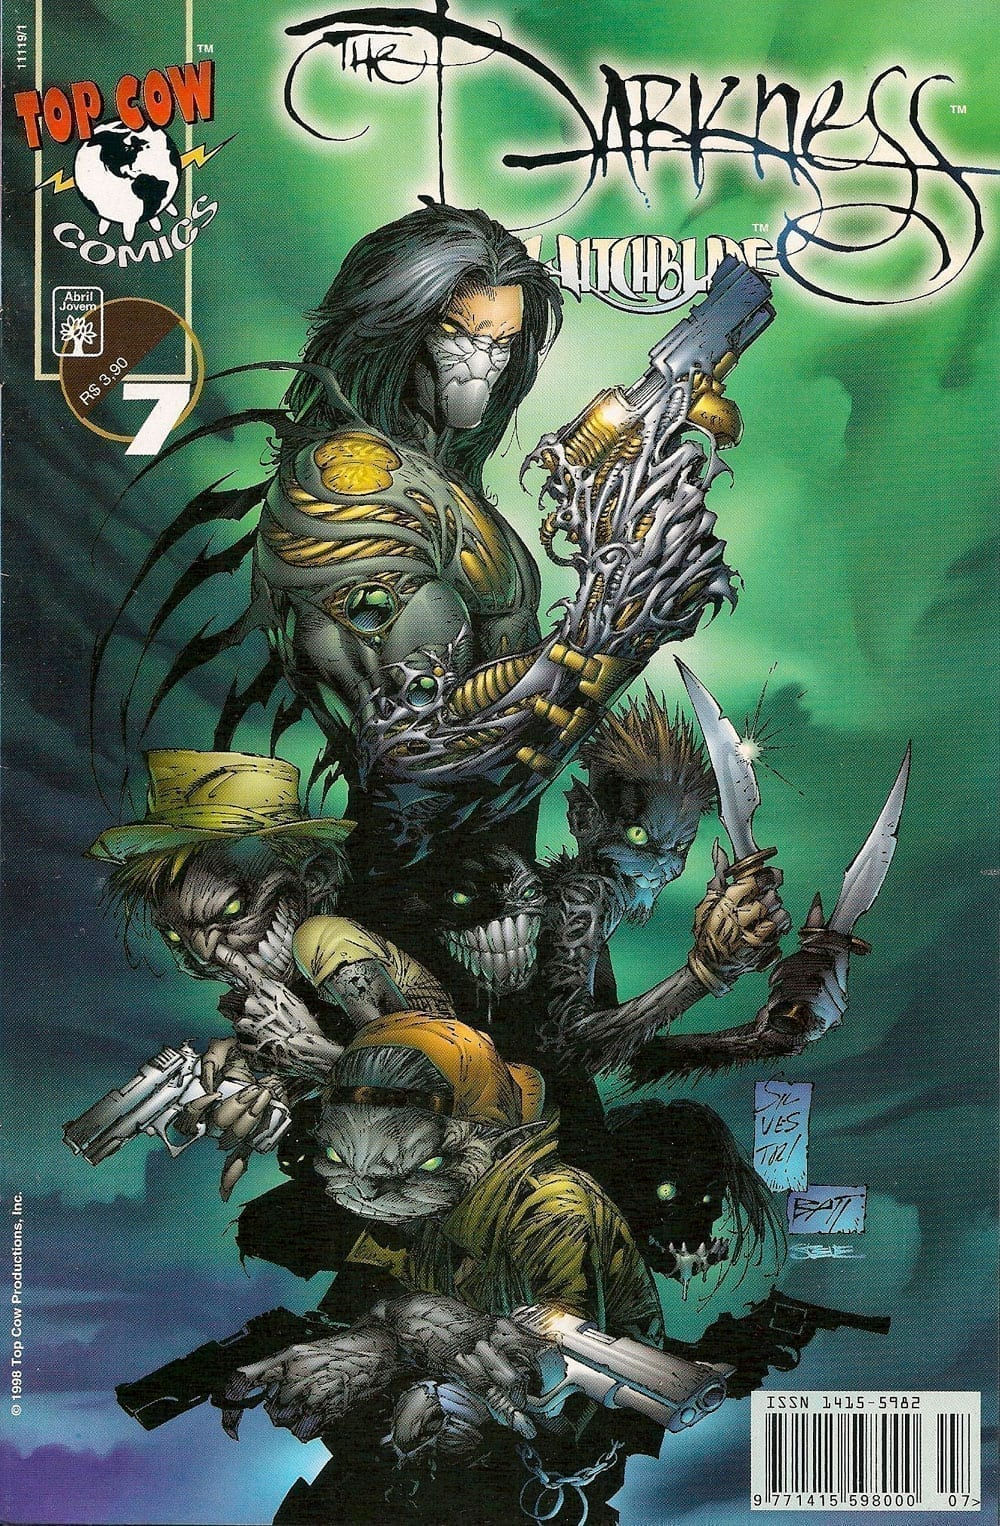 <span>The Darkness & Witchblade 7</span>